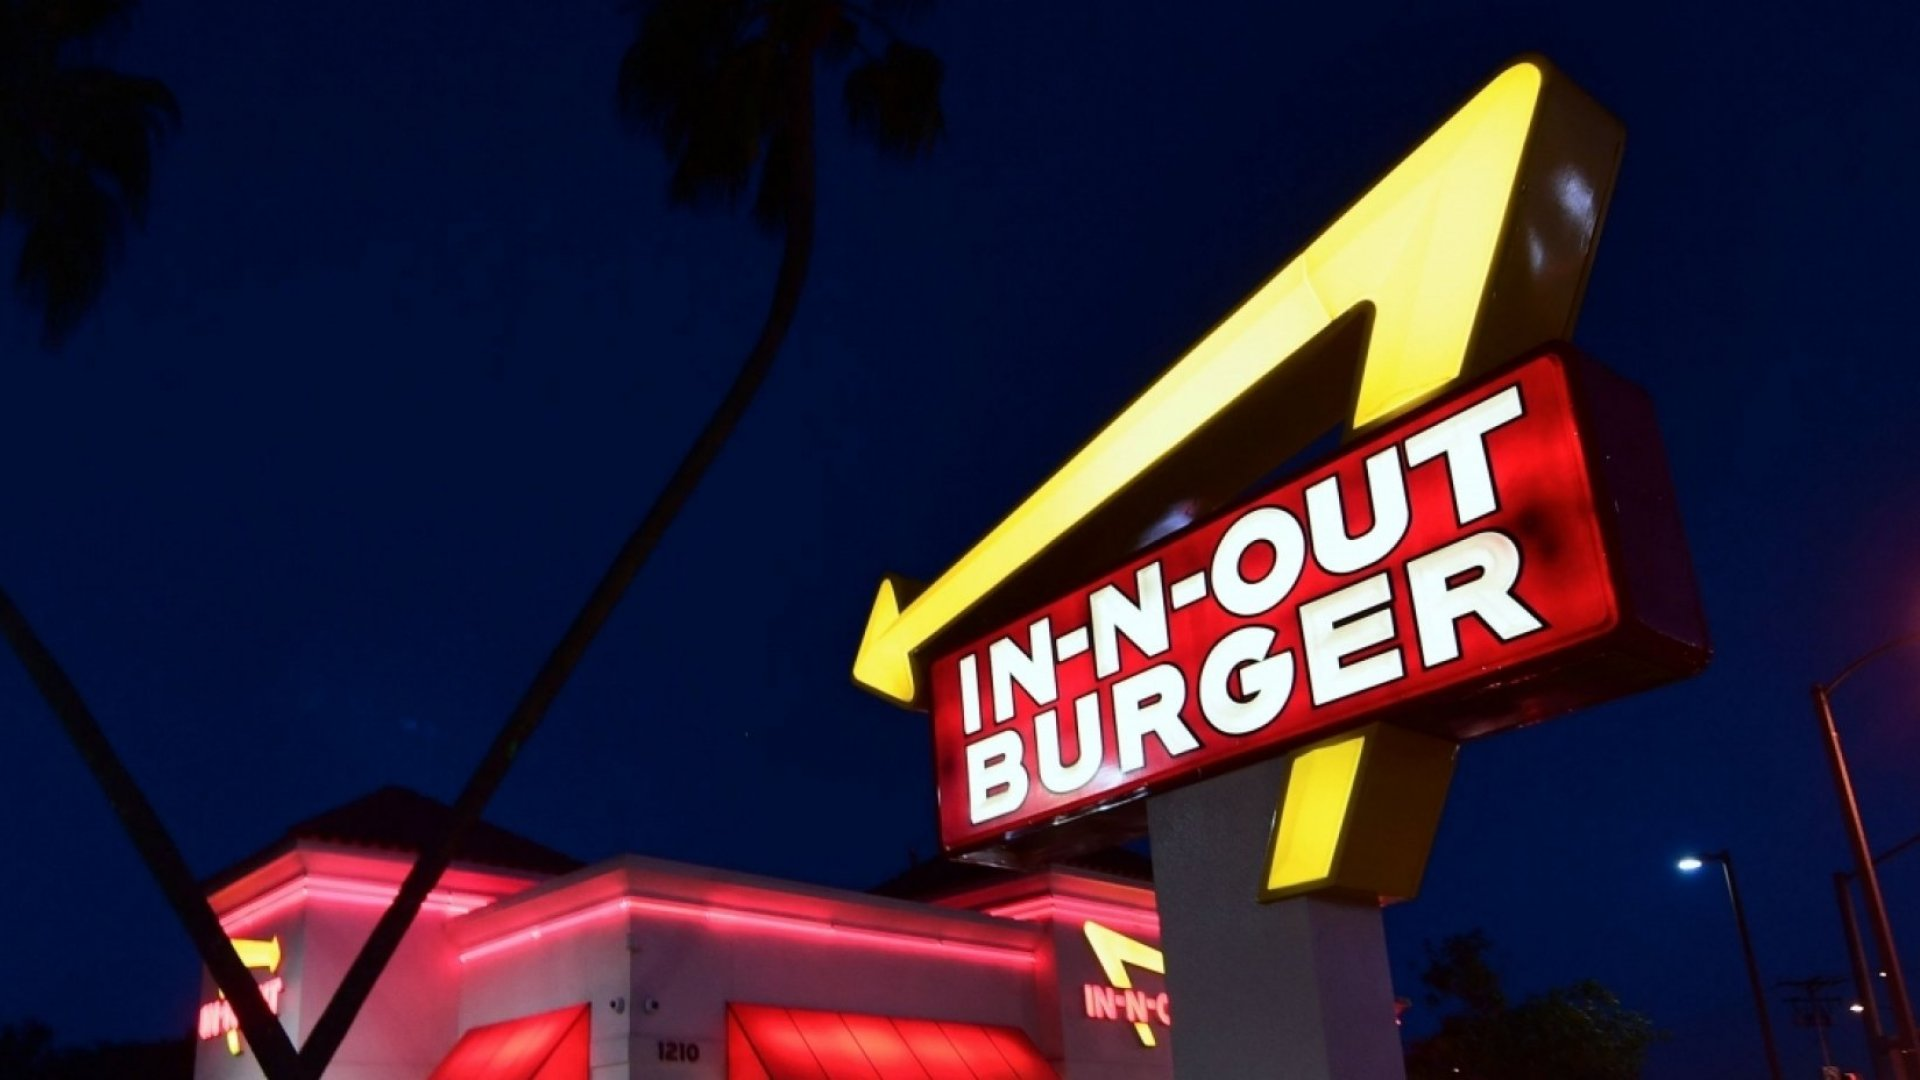 Everyone at IN-N-Out is pointing in the same direction.